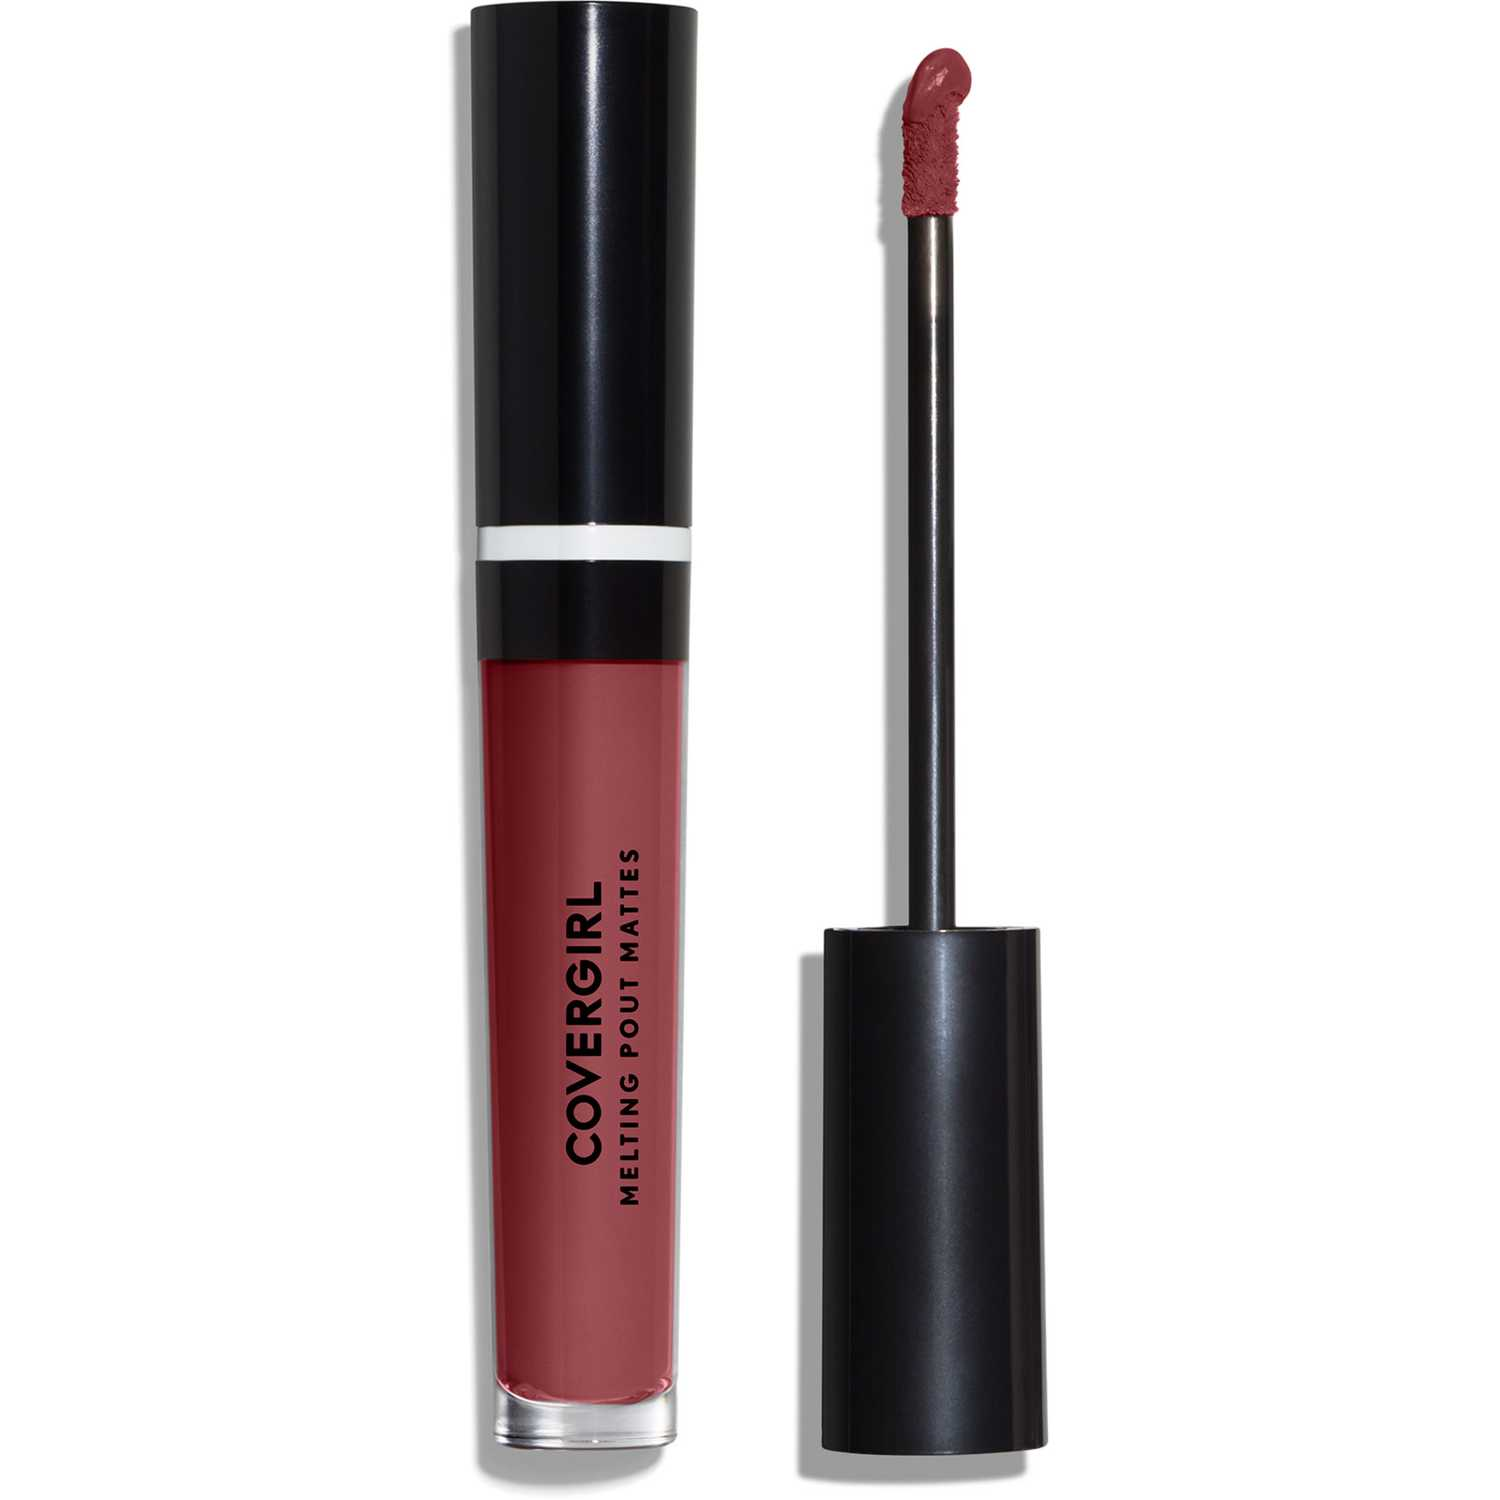 Covergirl Labial Melting Pout Matte All Nighters Lápices labiales